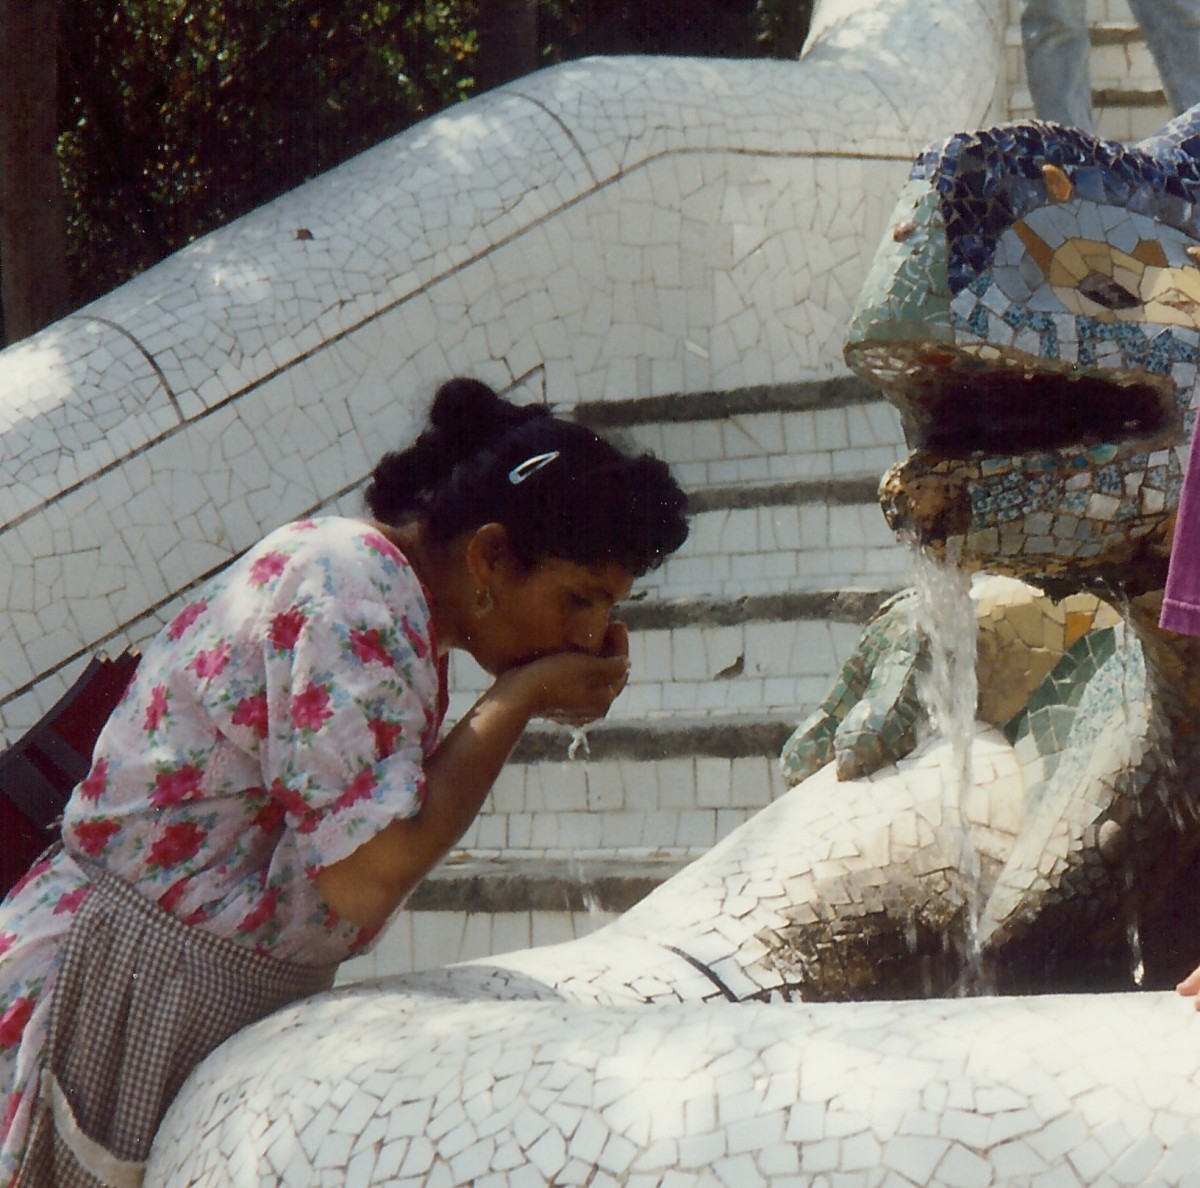 A woman drinking from the dragon fountain